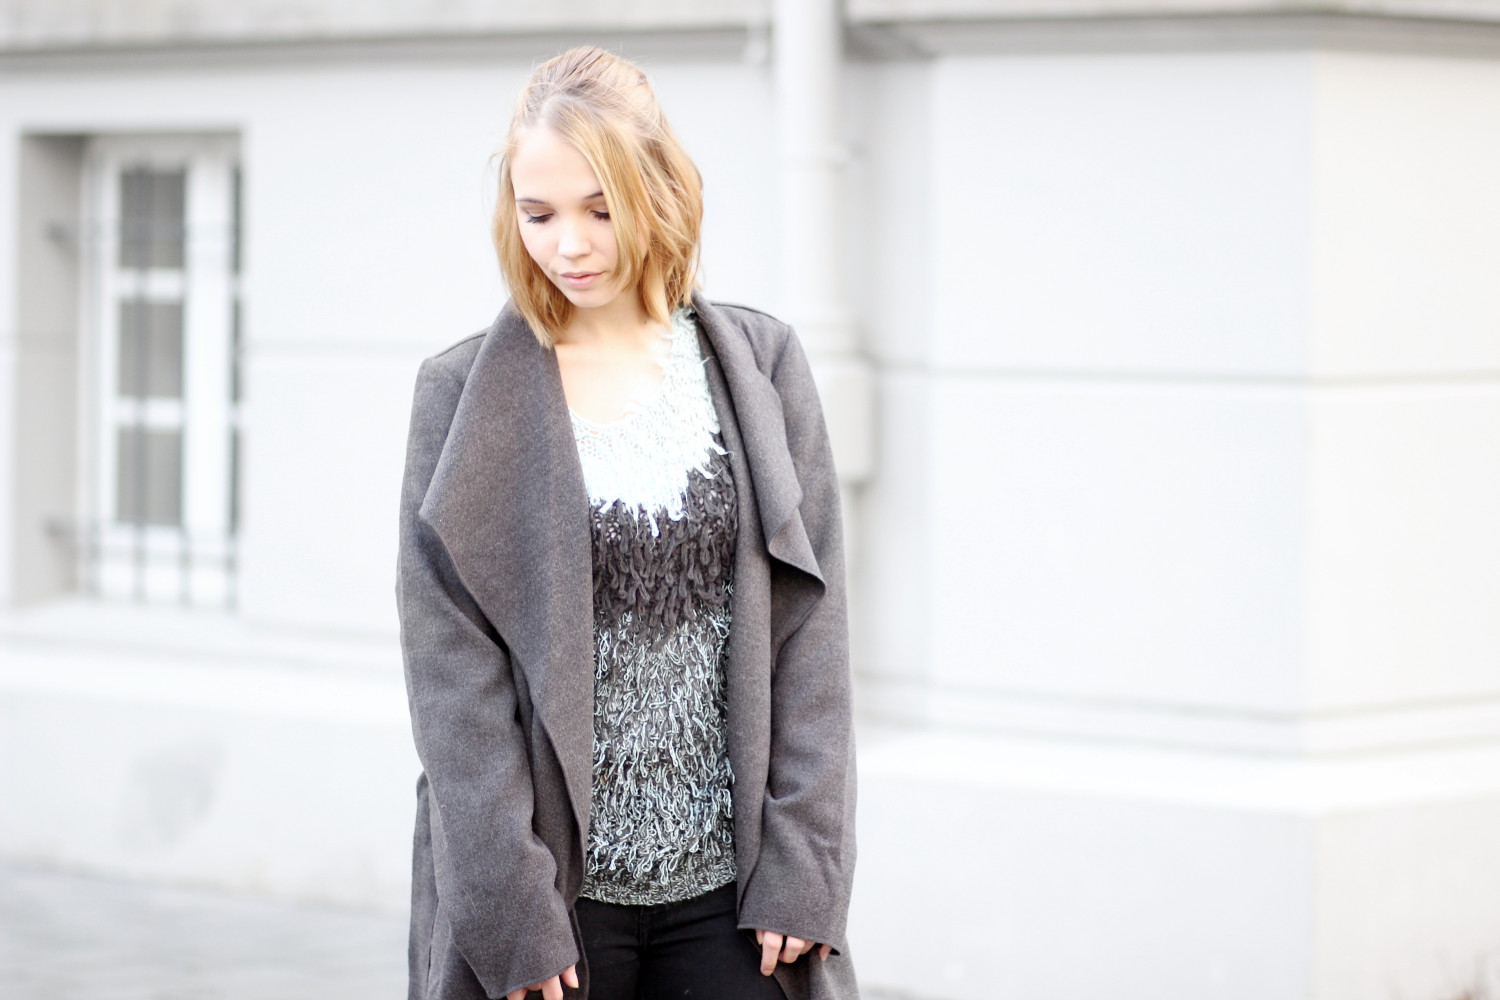 bezauberndenana-fashionblog-streetstyle-lässiges-outfit-winter-about-you (7)